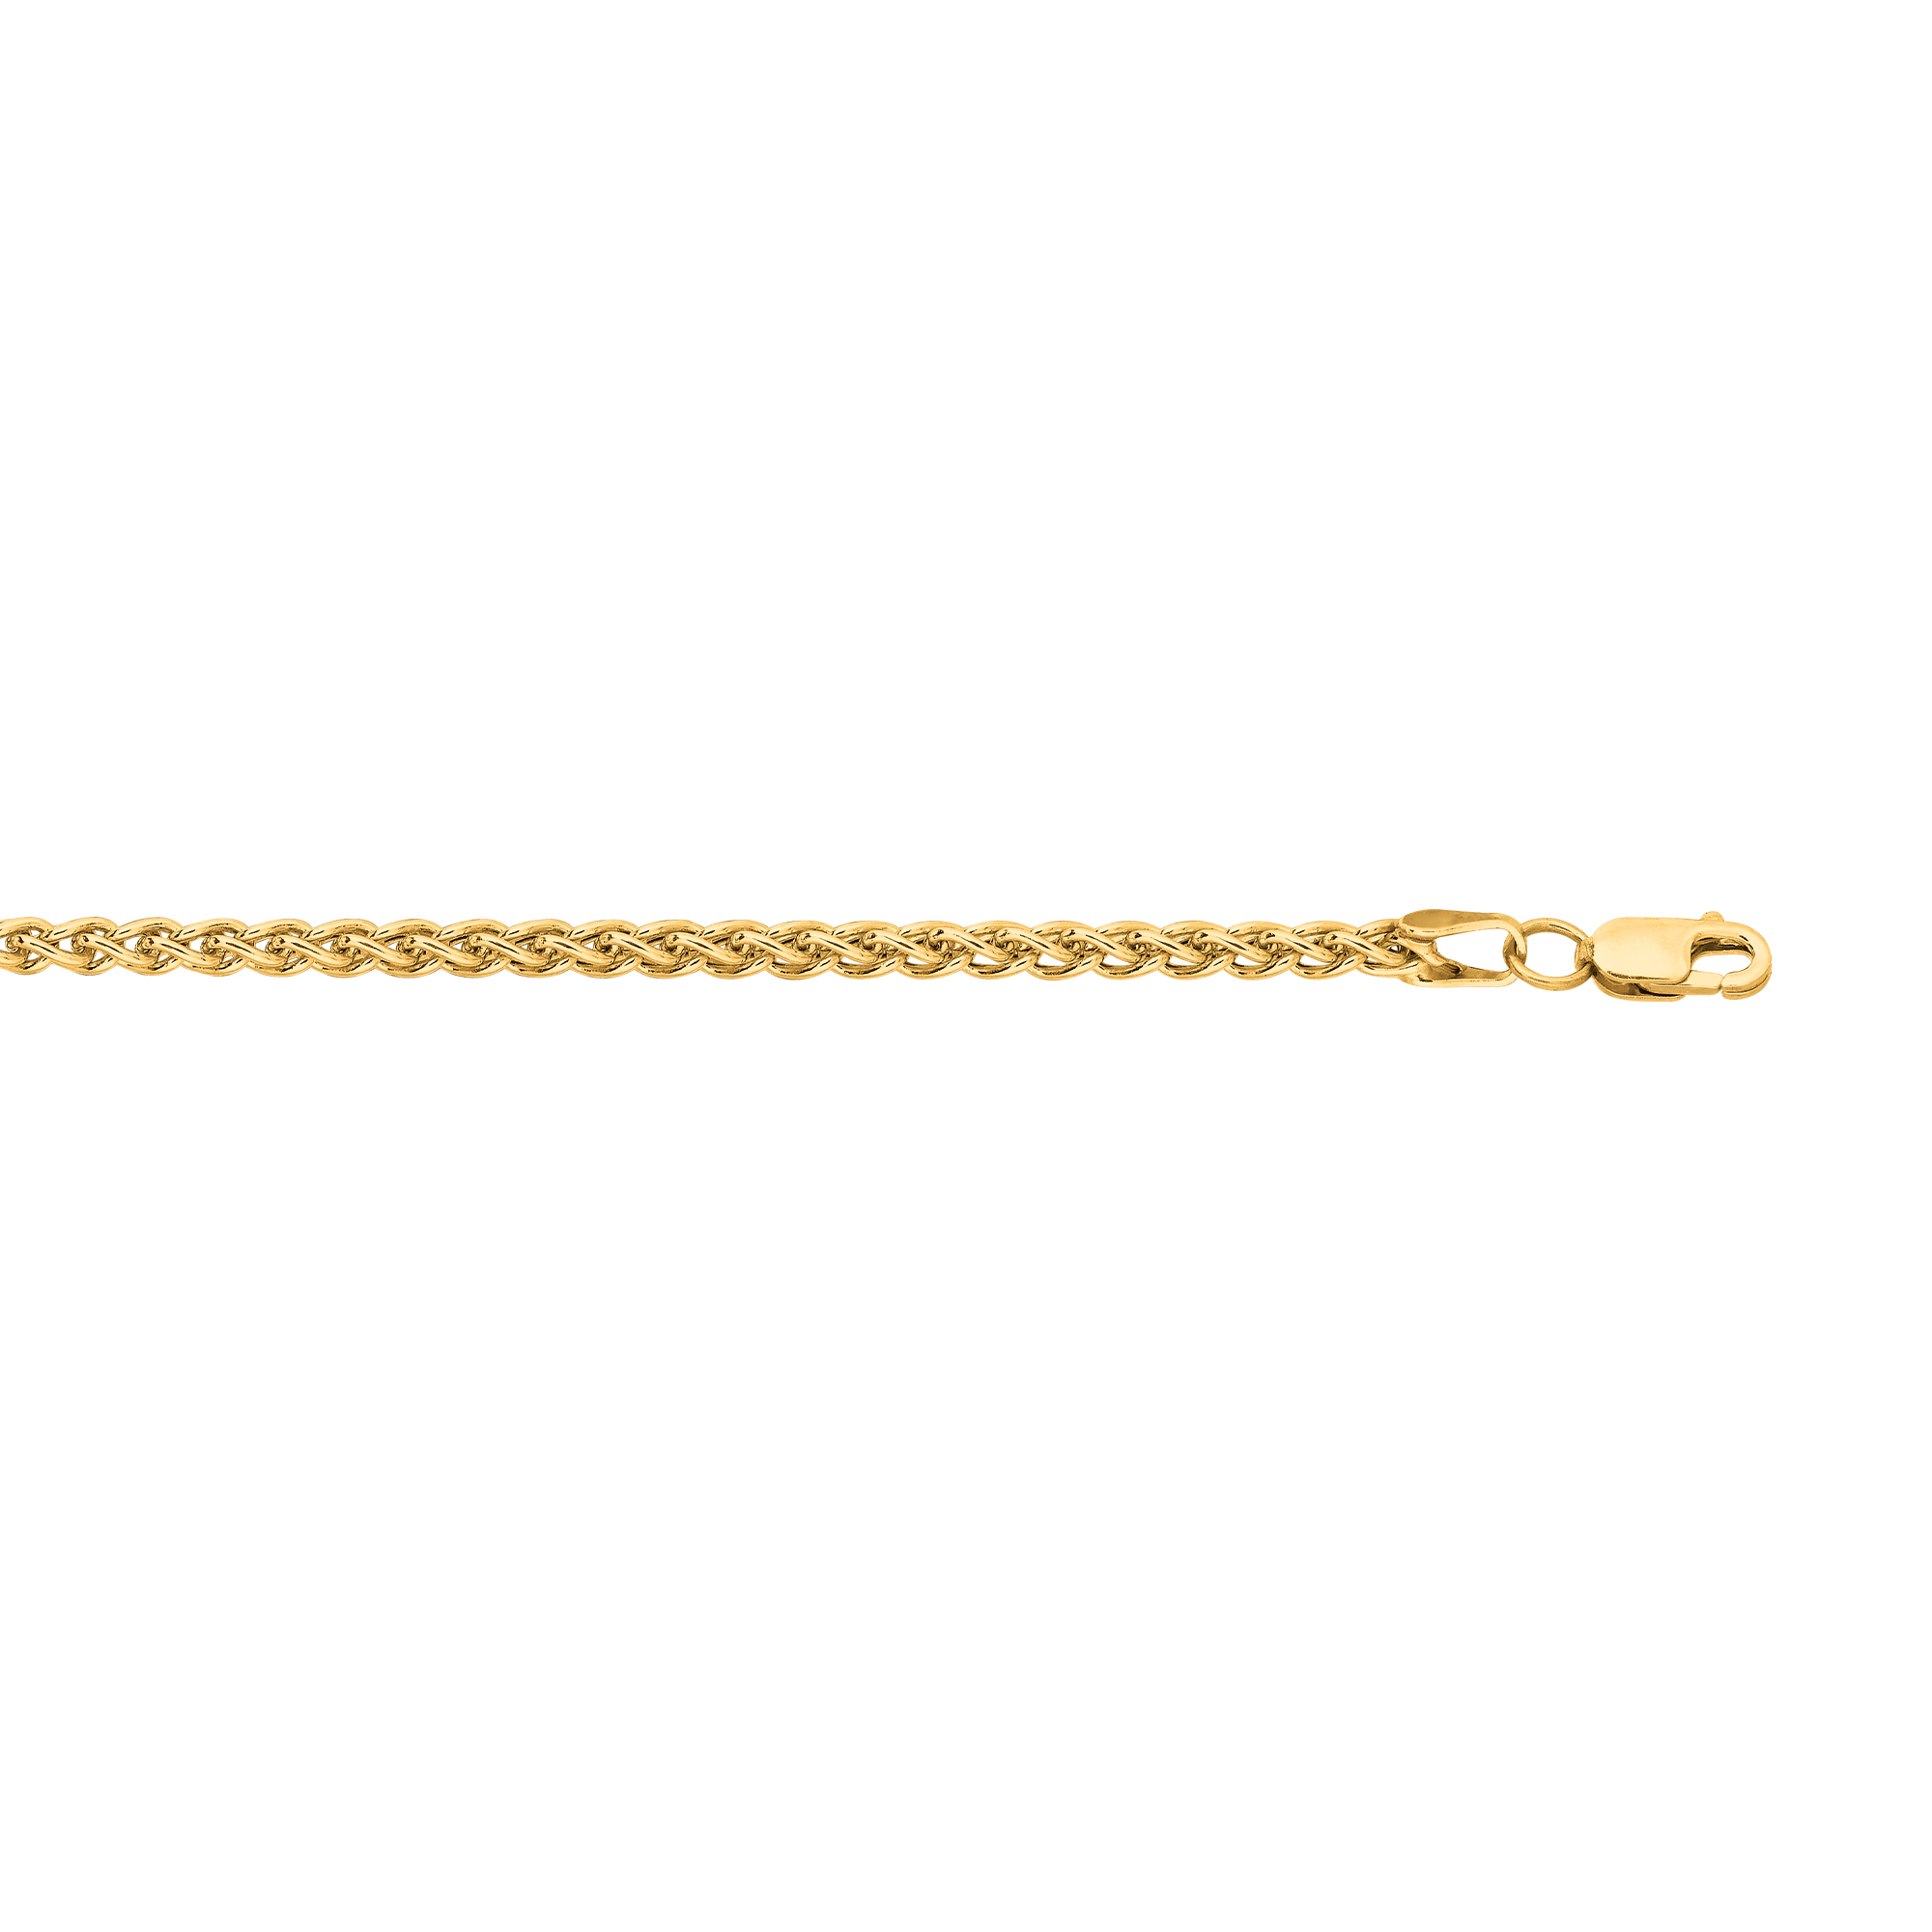 Hollow 14k Gold Wheat Chain For Men & Women 2.8mm Wide Yellow Image